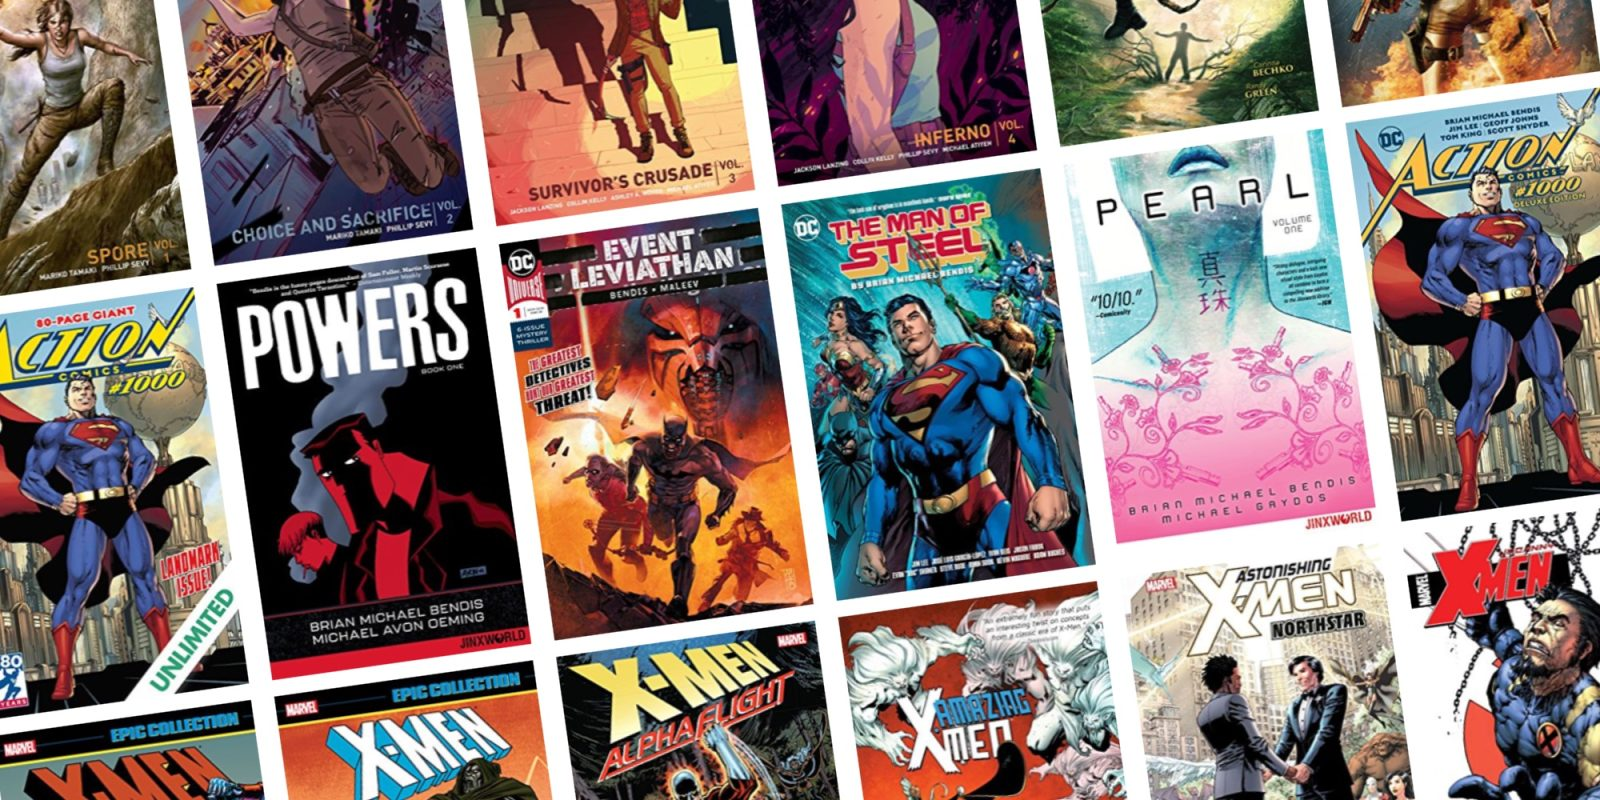 Save up to 75% on DC, Marvel and other graphic novels from $1 at ComiXology